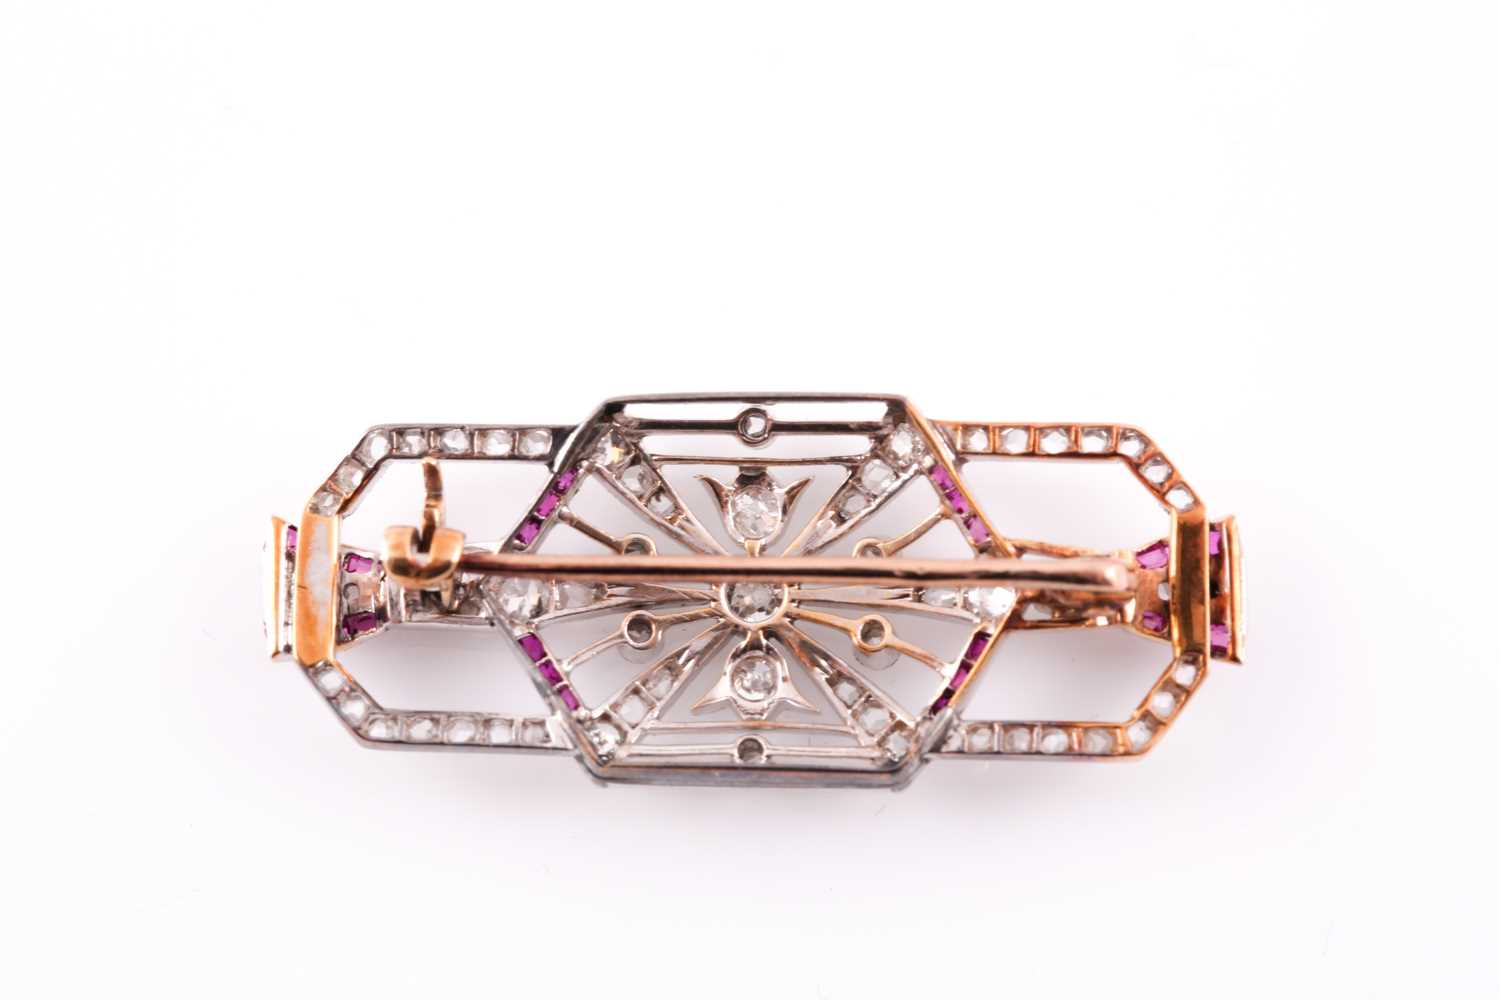 A diamond and ruby plaque brooch, in the Art Deco style, set with round single-cut and rose-cut - Image 2 of 2